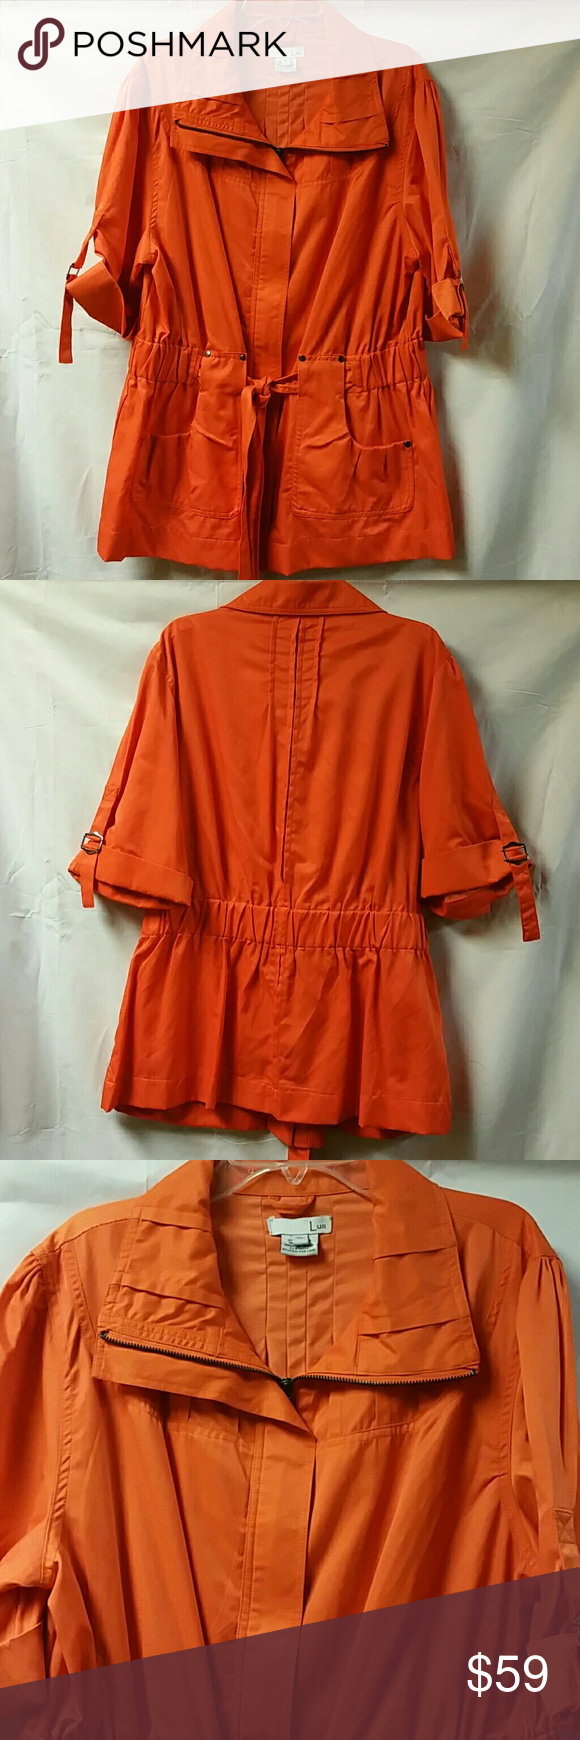 "Fall utility jacket. Great color!! Size XL This is a bright orange utility jacket, perfect for Fall. Jacket is not as bright as photo. Picture 3 depicts true color. Kind of a pumpkin orange, just a bit brighter. Worn once, excellent condition. Hidden zipper, longer short sleeves, two front pockets, elastic wide waistband with attached belt. Measures approx. 27"" in length, bust measures approx. 38"". Size XL. Lux Jackets & Coats Utility Jackets"